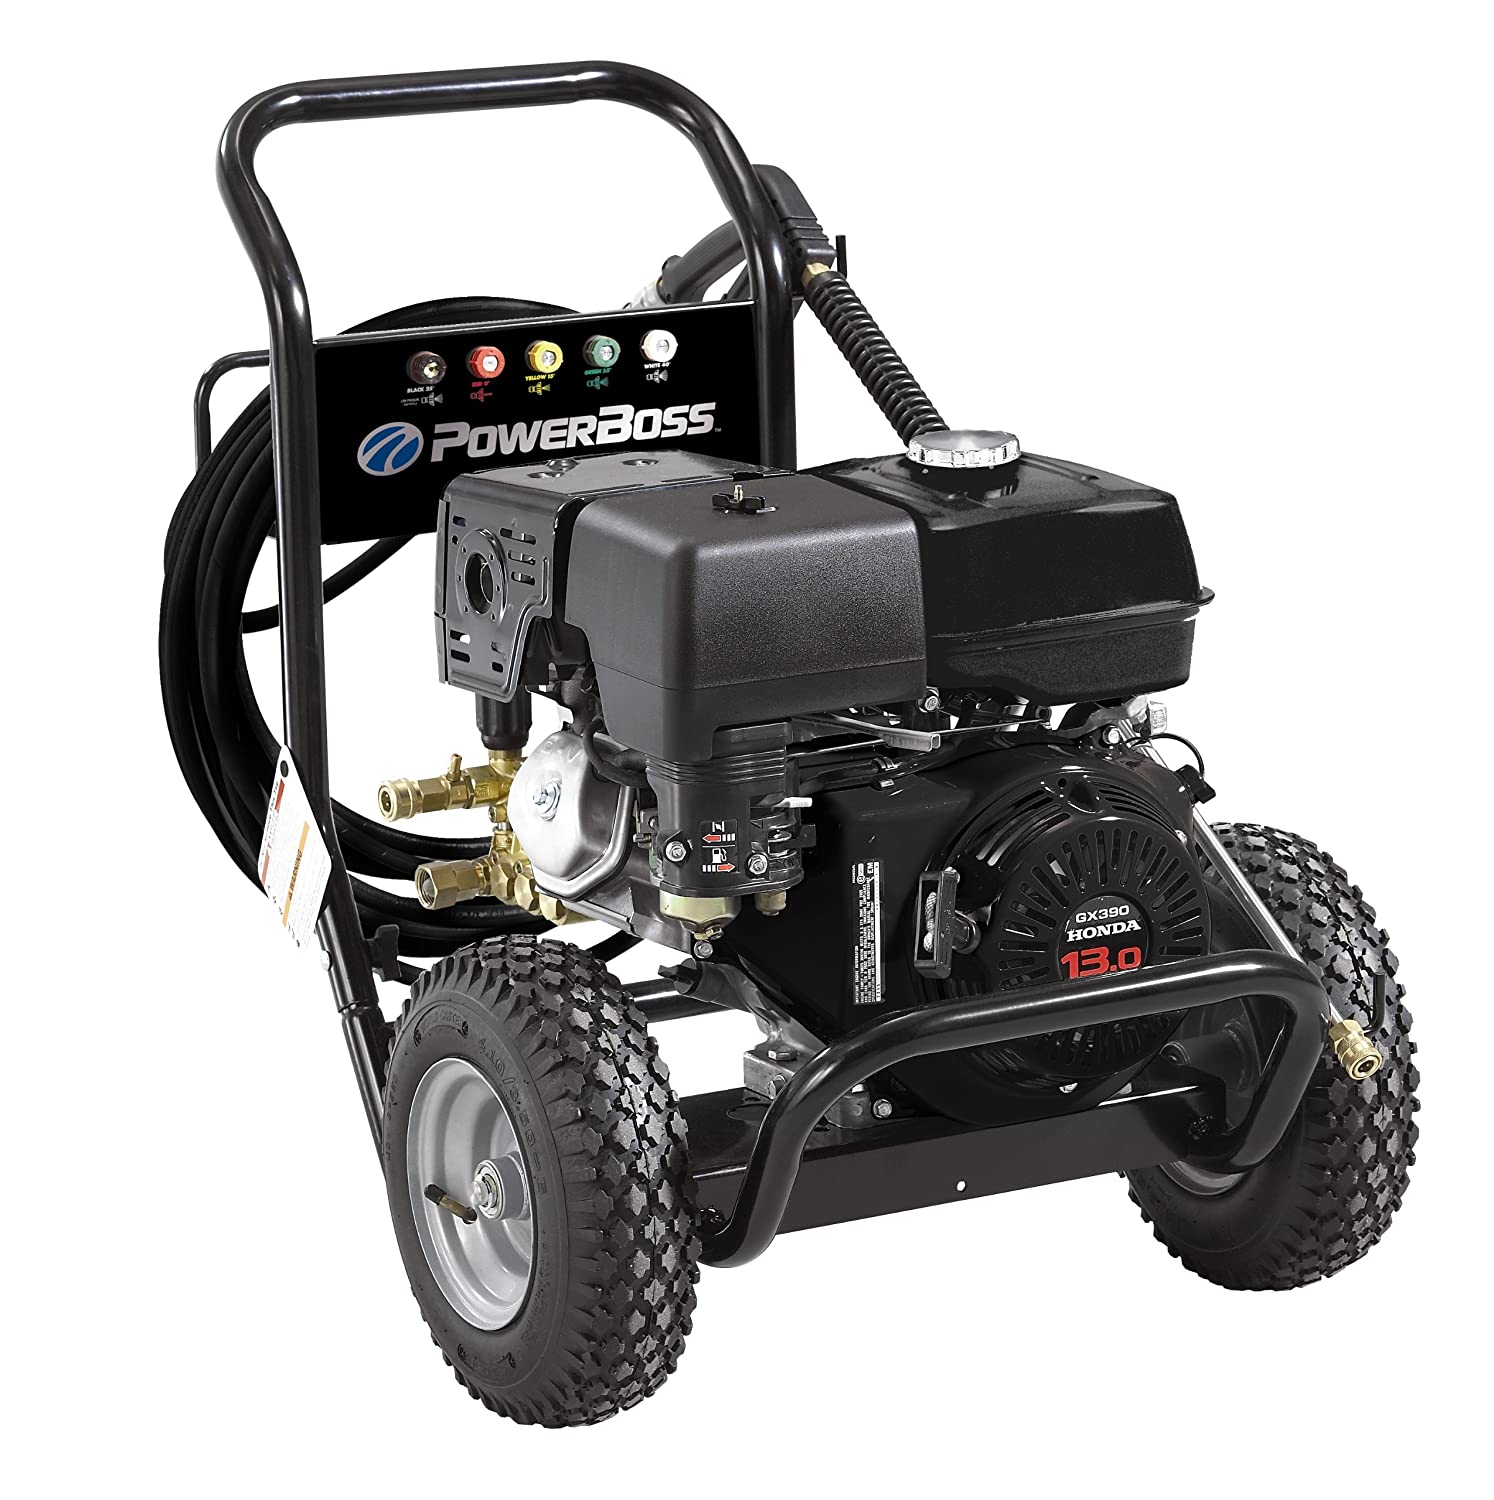 91p9tEXaliL._SL1500_ amazon com powerboss 20454 3800 psi 4 0 gpm honda gx390 389cc  at n-0.co